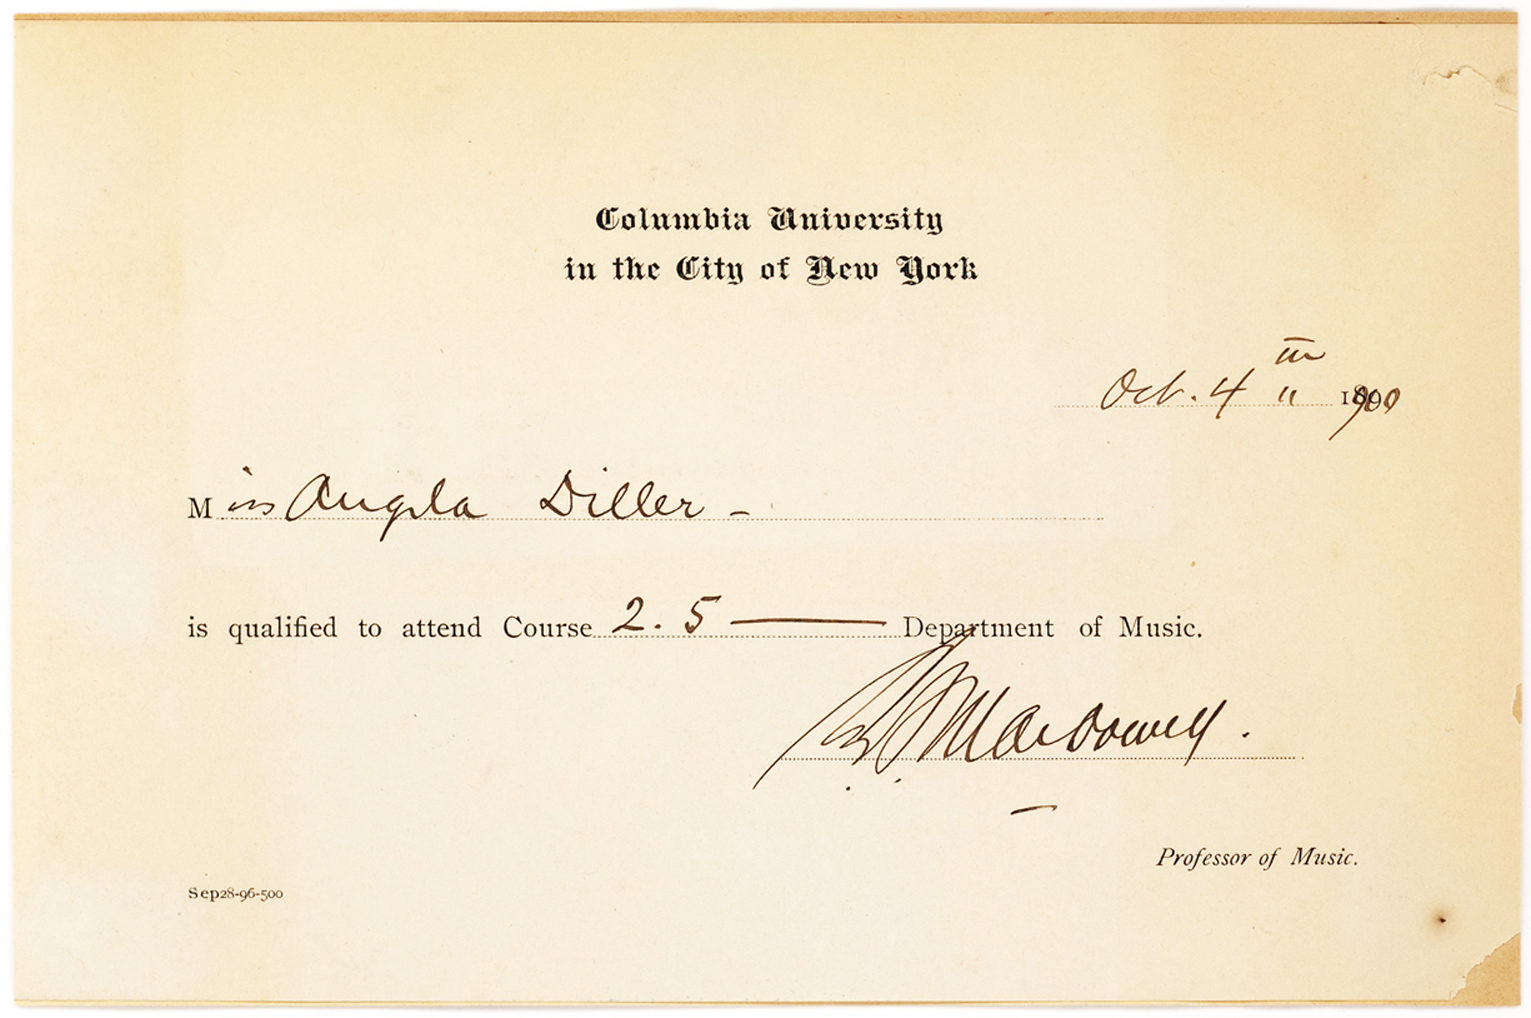 A Partially-printed Document Signed by Columbia's First Professor of Music Acknowledging that Angela Diller is Qualified to Attend  a Course at the University